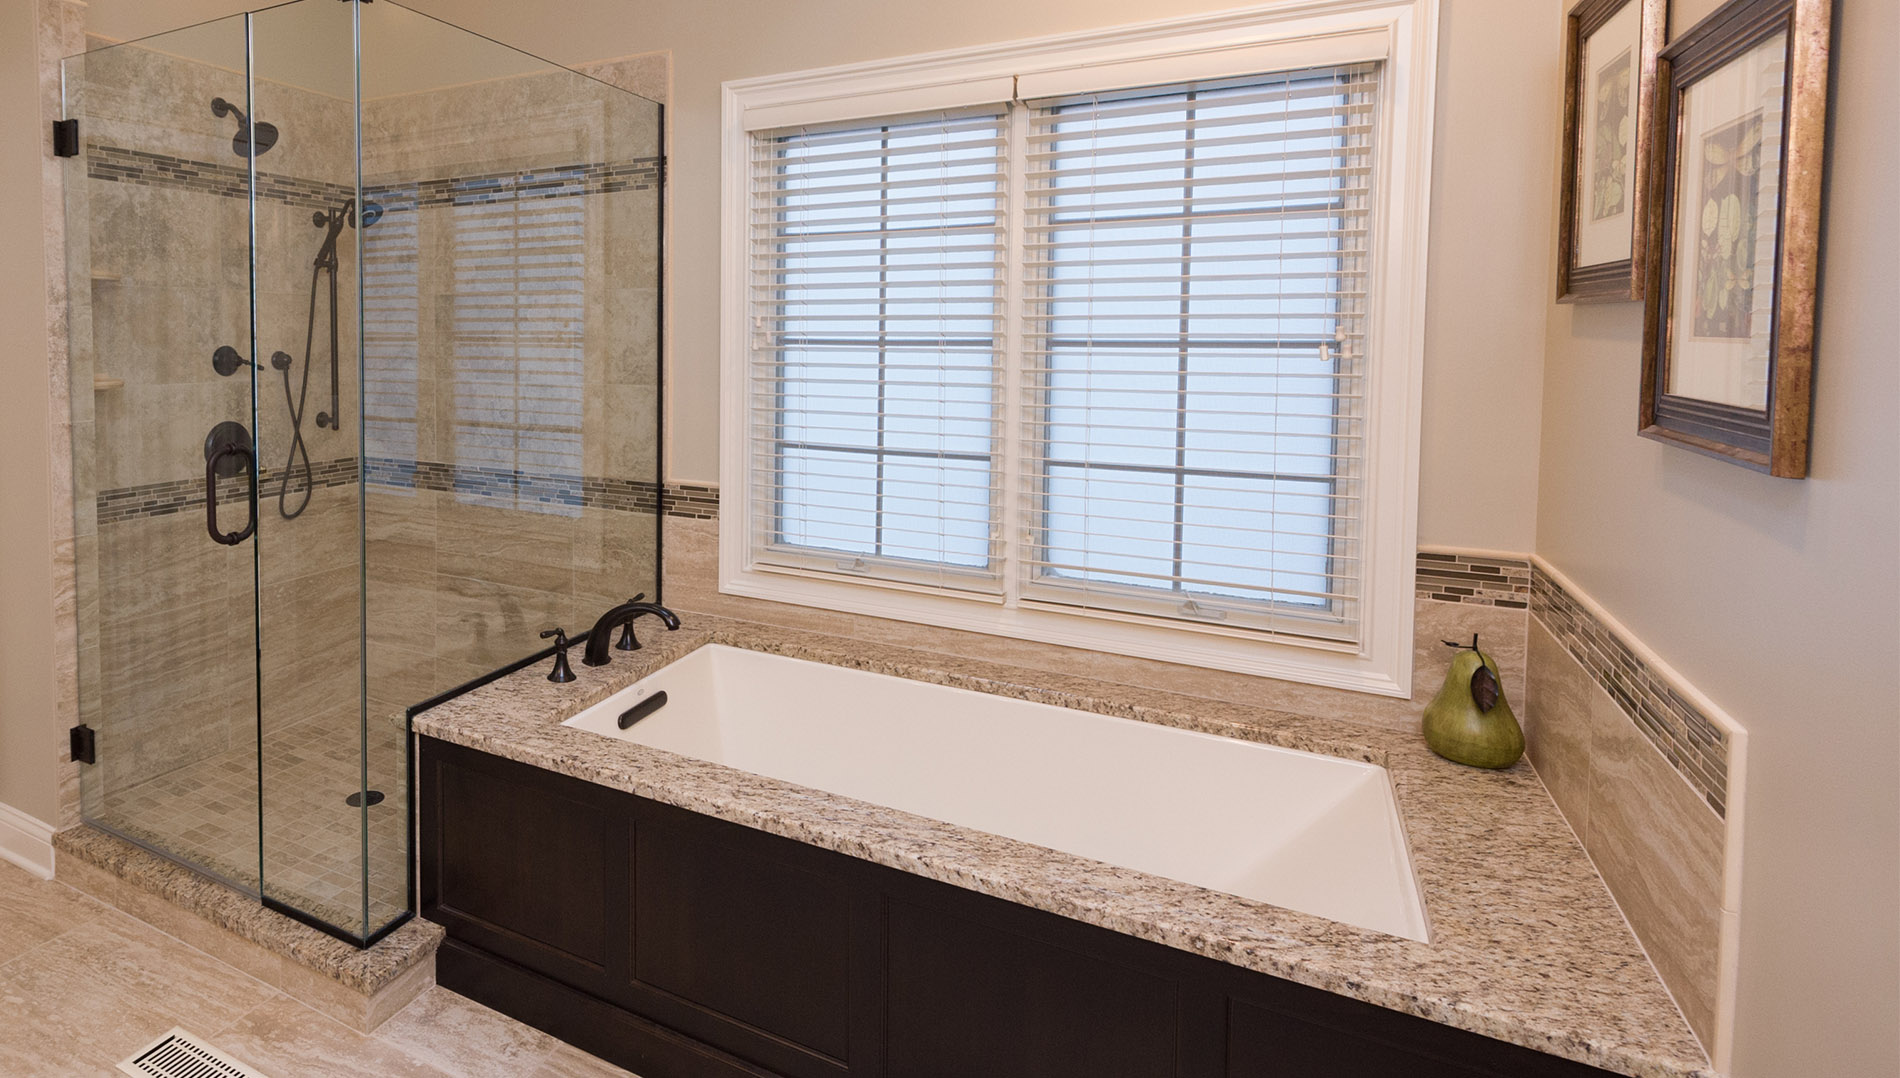 Large soaker tub and roomy walk in shower provide options for the perfect relaxation options.